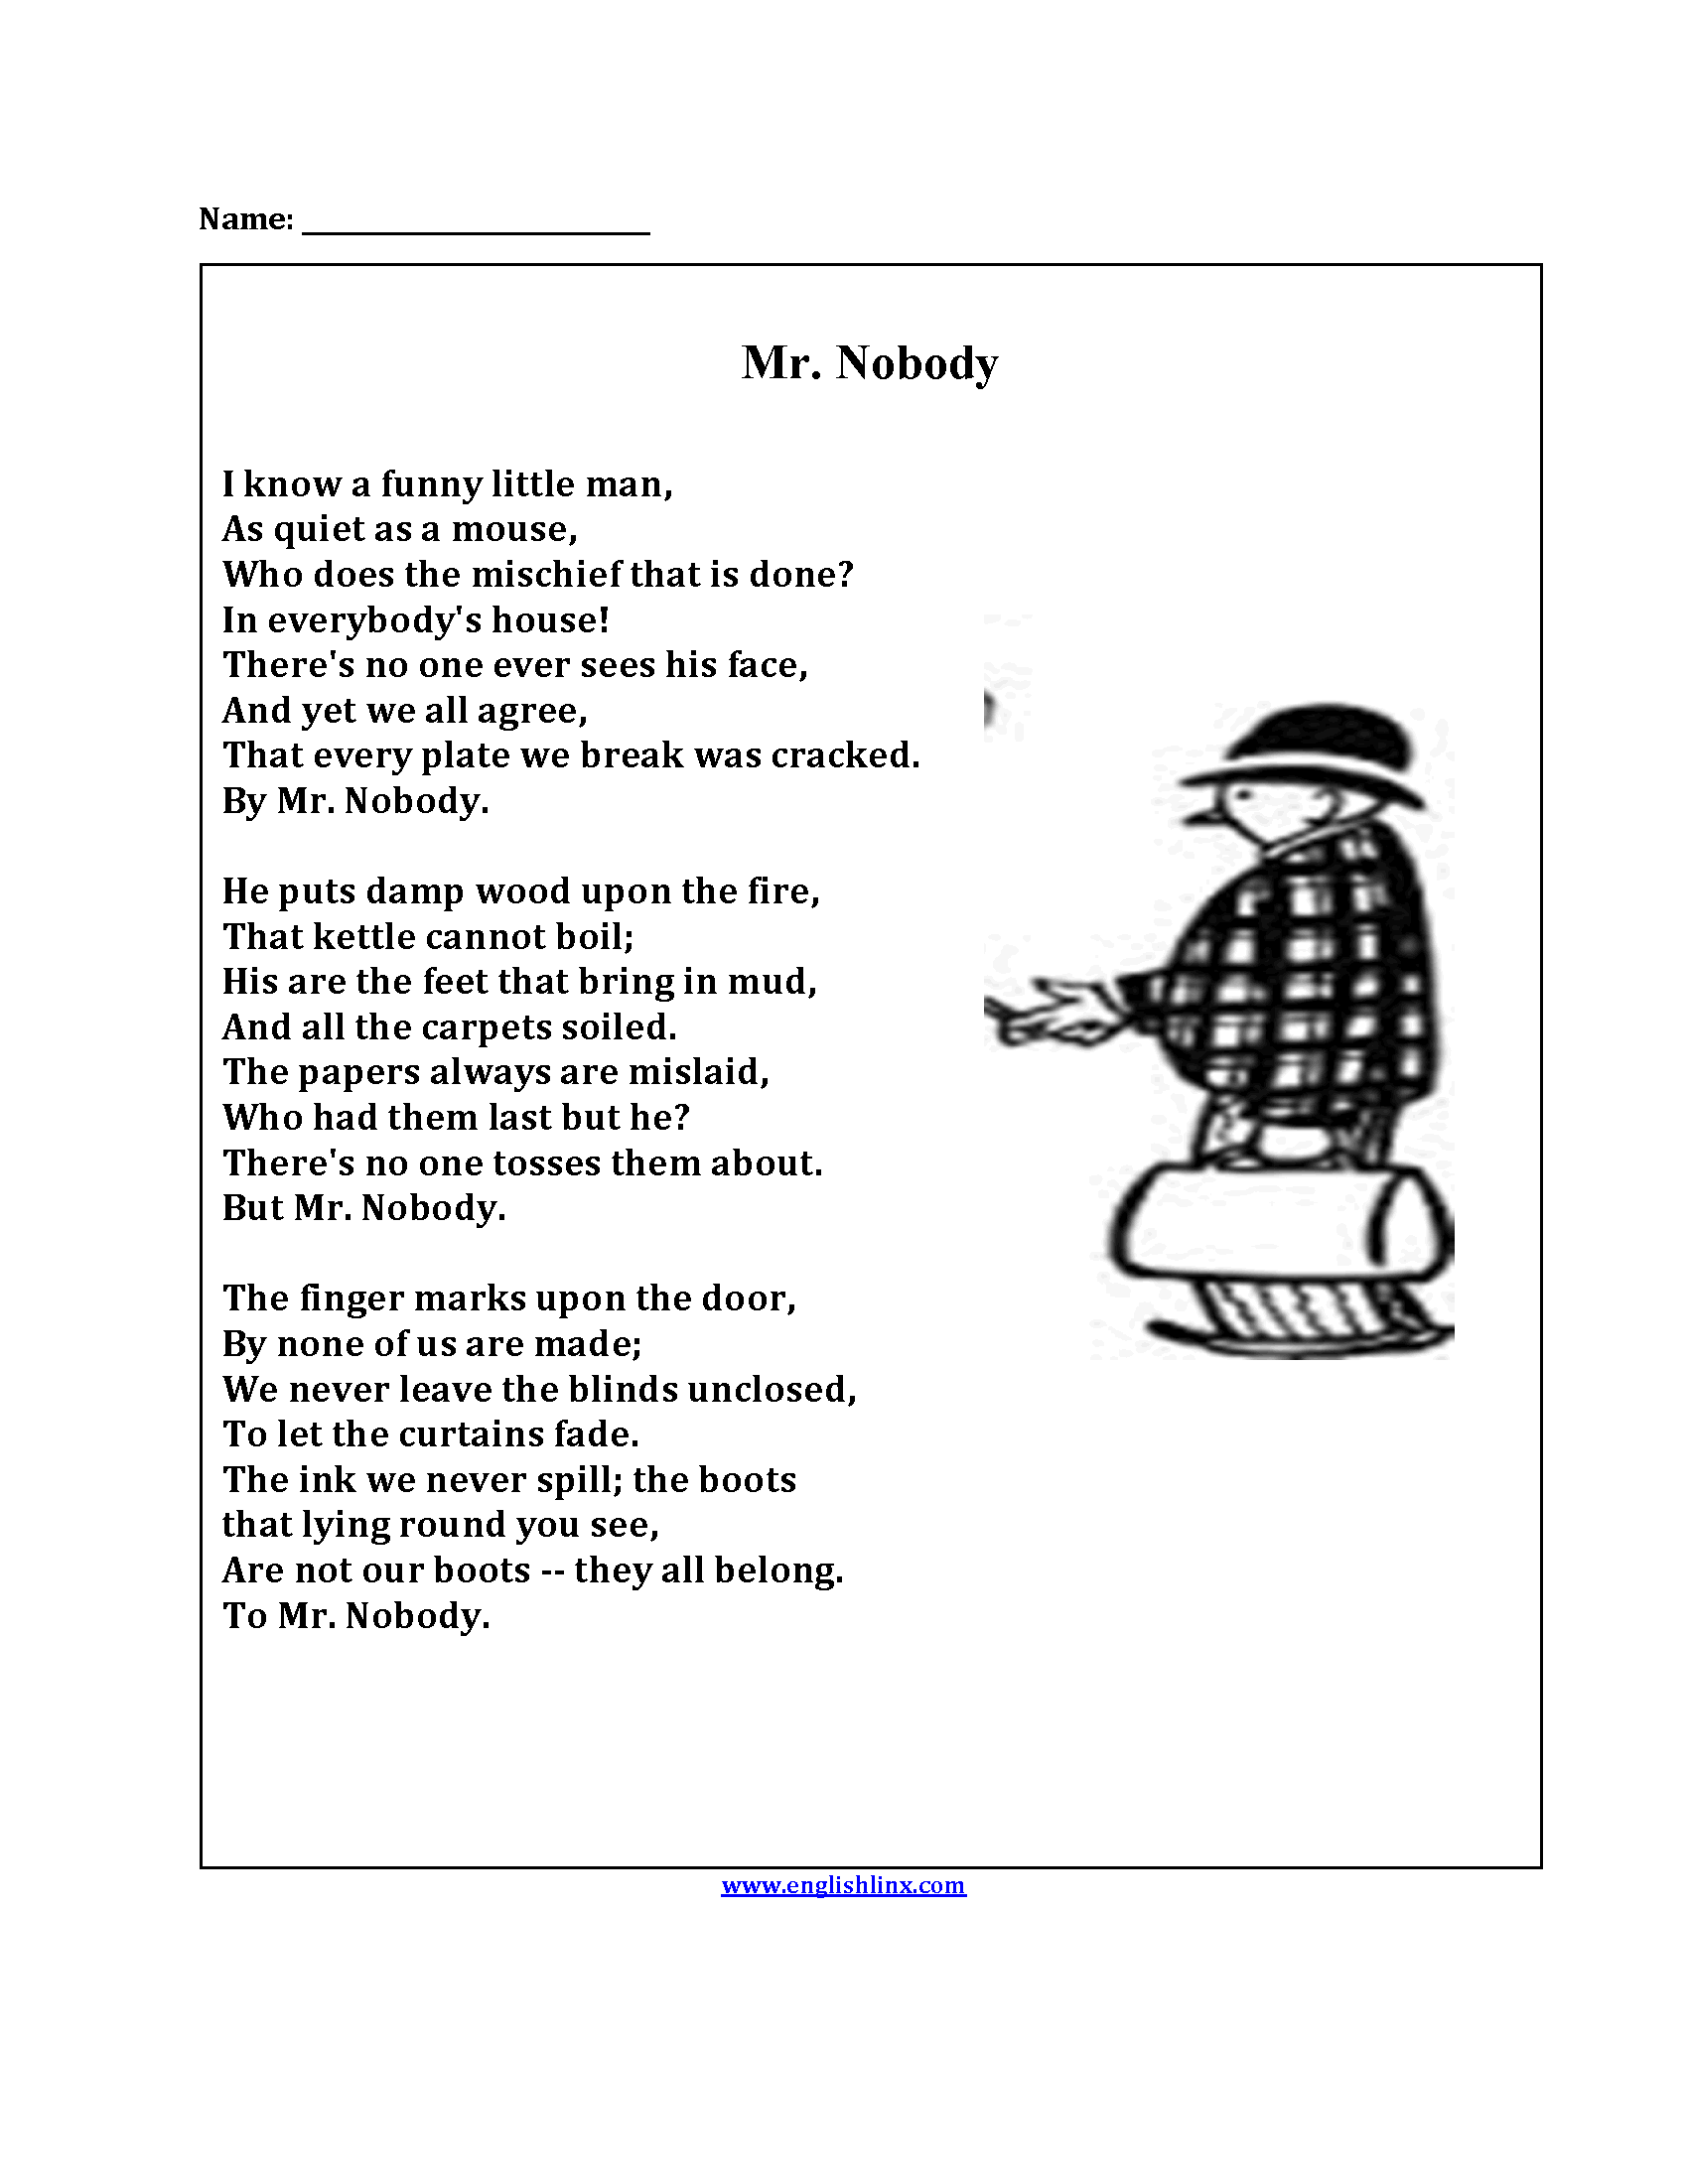 poetry worksheets mr nobody poetry worksheets. Black Bedroom Furniture Sets. Home Design Ideas